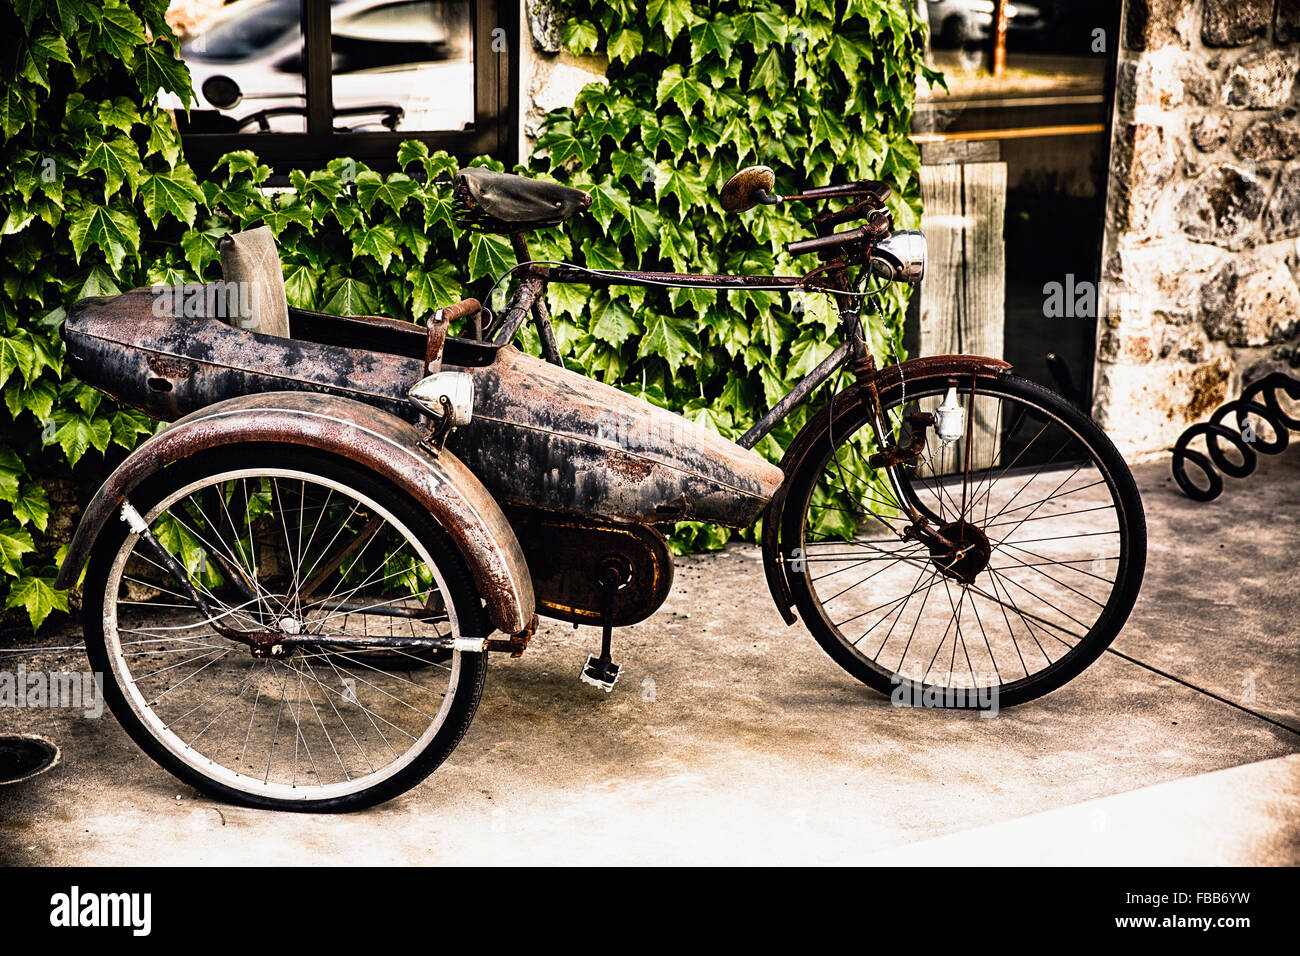 Close Up View of a Classic Bicycle with a Side Car, Yountville, Napa Valley, California - Stock Image